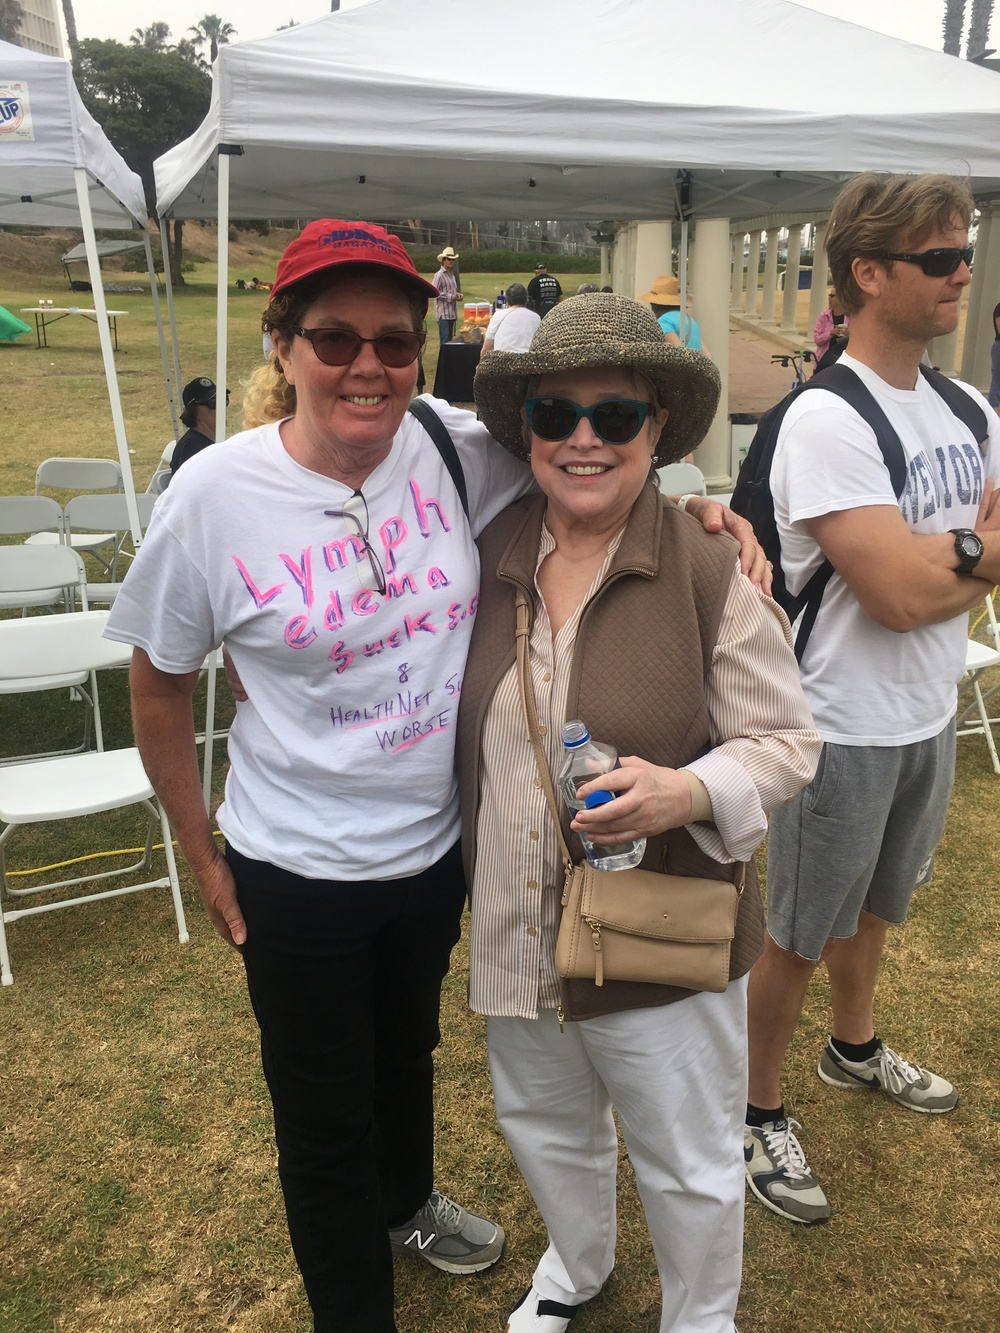 I got to meet actress Kathy Bates at the 2nd annual Run/Walk to fight Lymphedema and Lymphatic Diseases June 26, 2016. Our team, Dr. Jay W. Granzow, raised $3,500 and the event raised over $48,000.